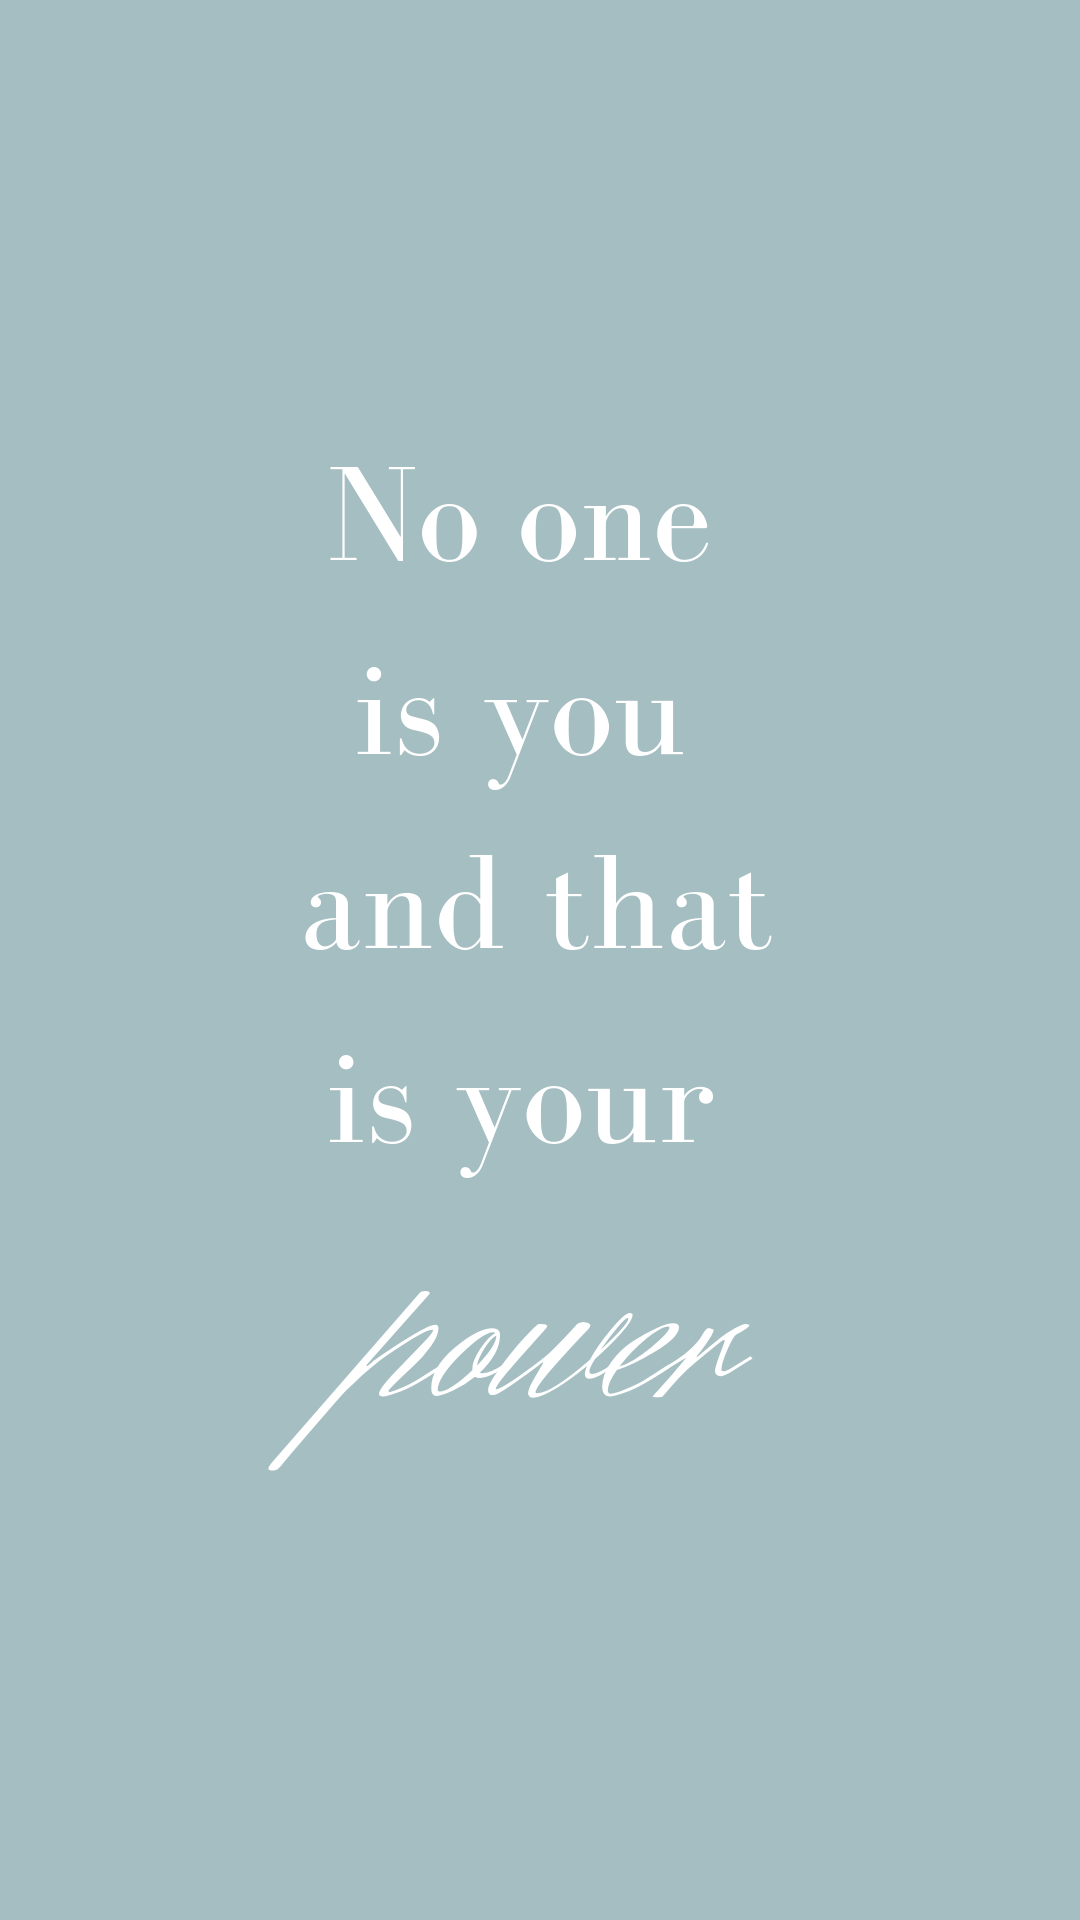 No one is you and that is your power | Motivational, inspiring quotes for your phone screen background | Miranda Schroeder Blog